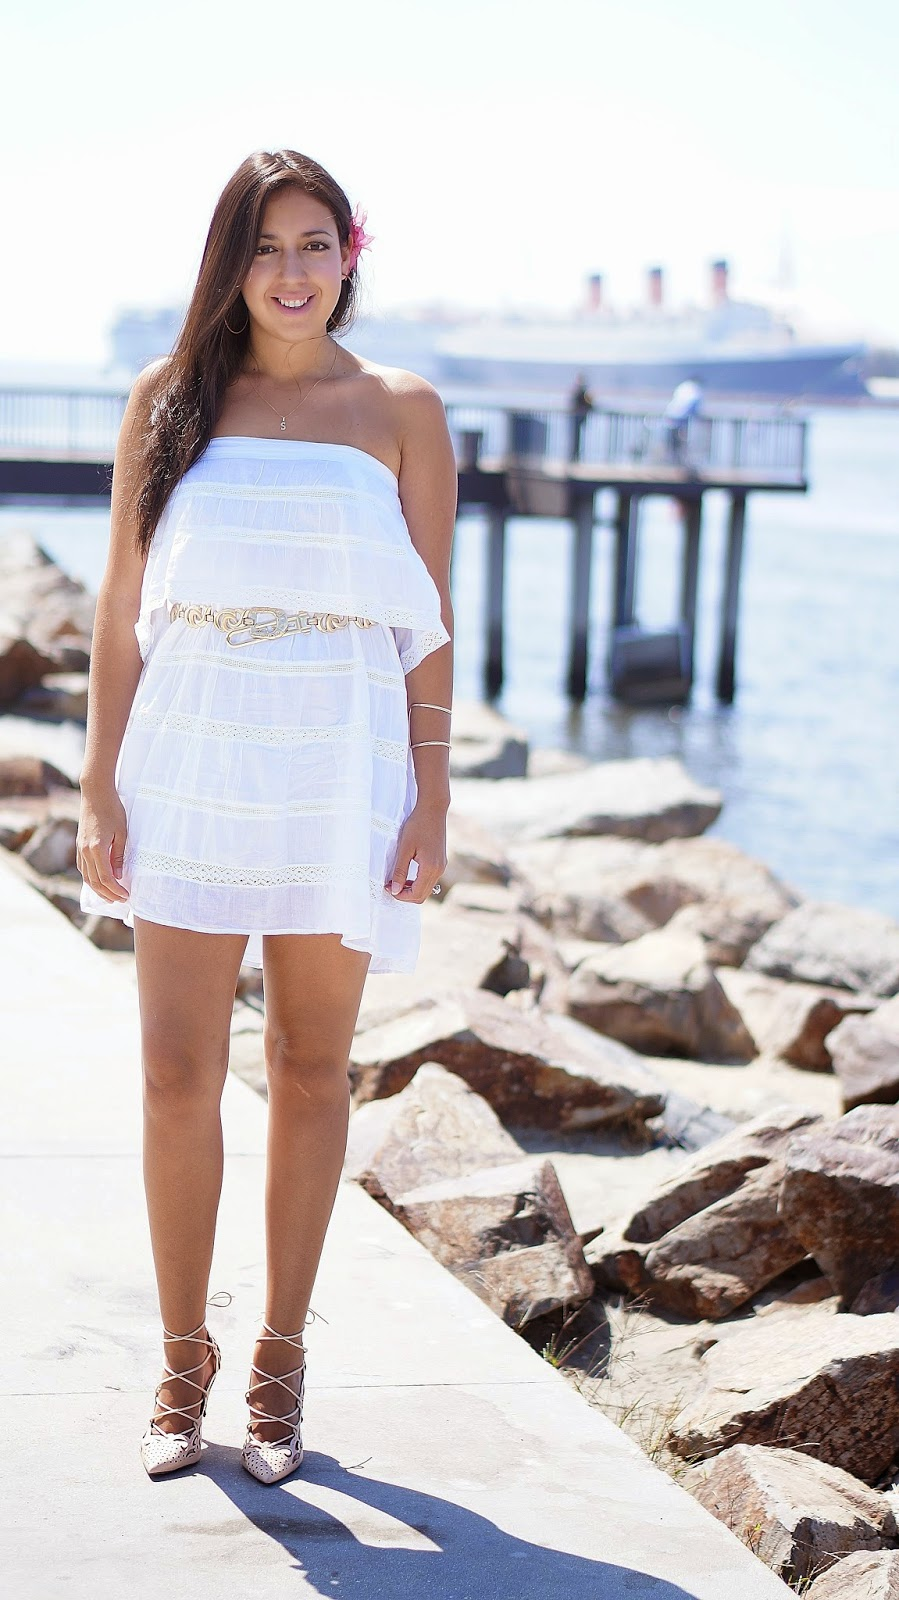 http://www.truehonestfashion.com/2014/06/perfect-little-white-dress.html